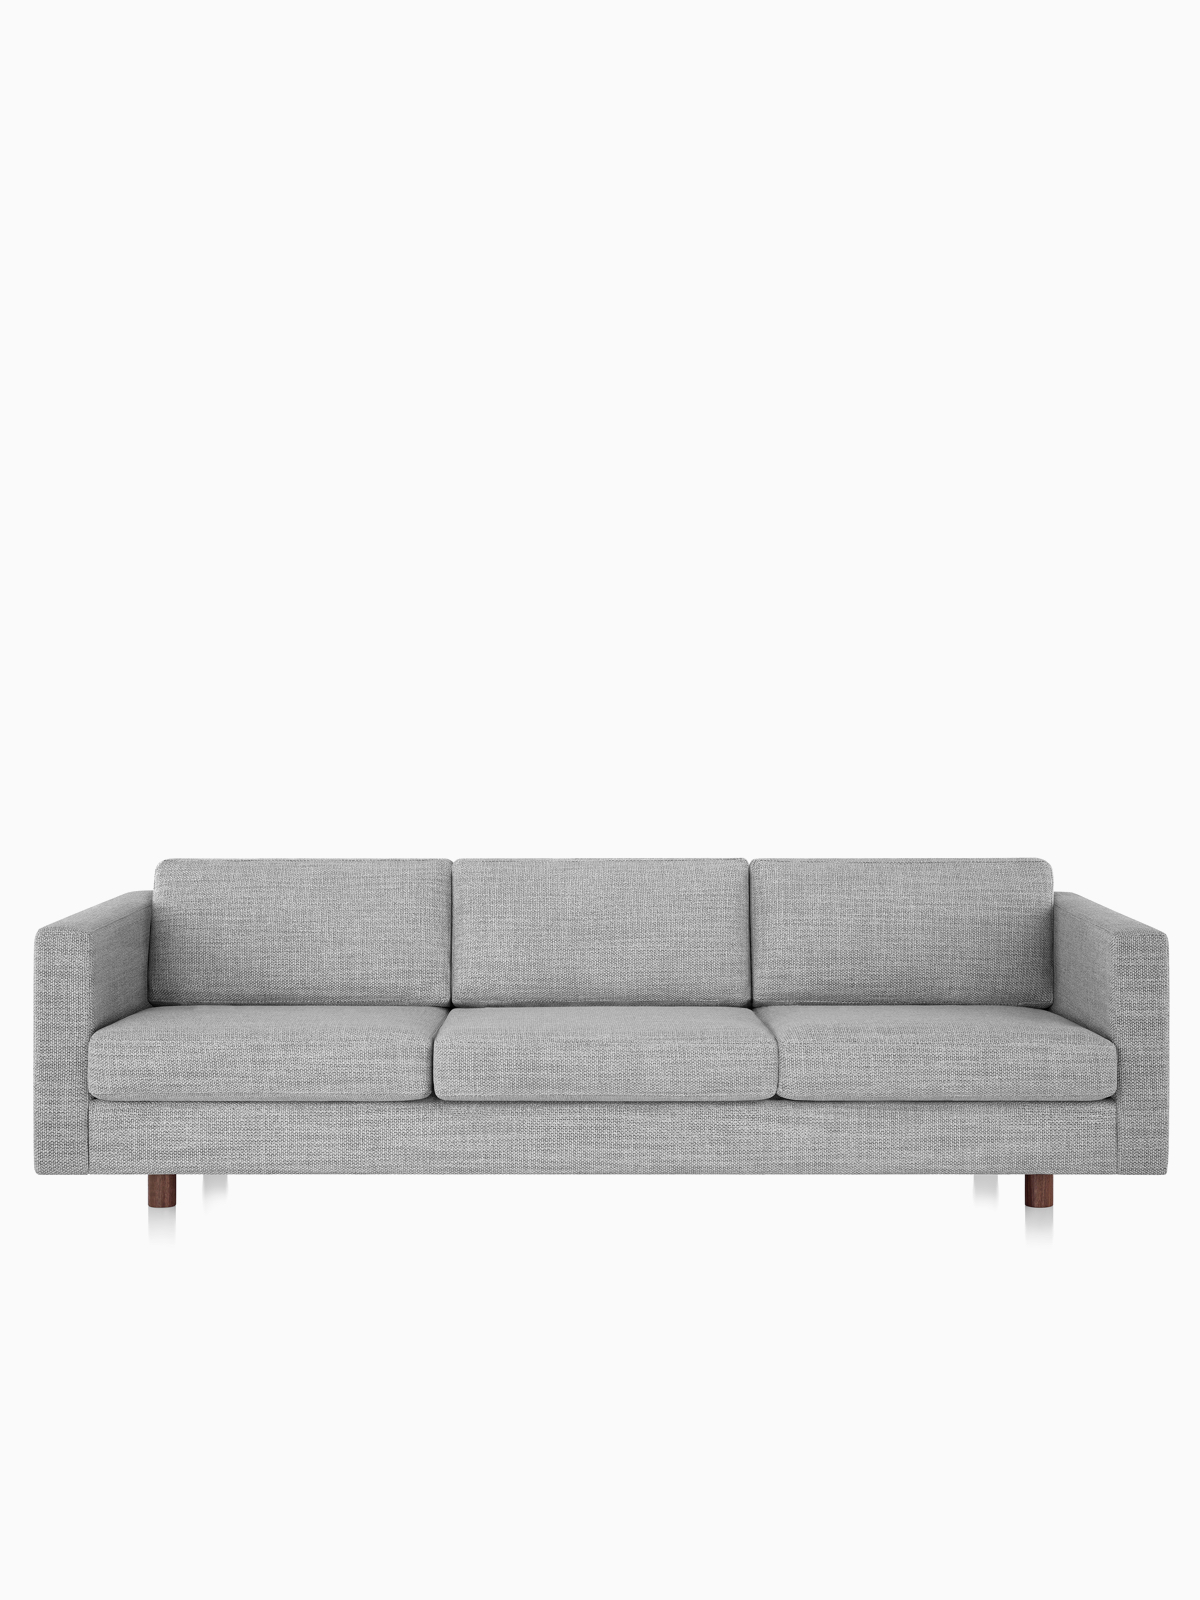 Lispenard Sofa Group